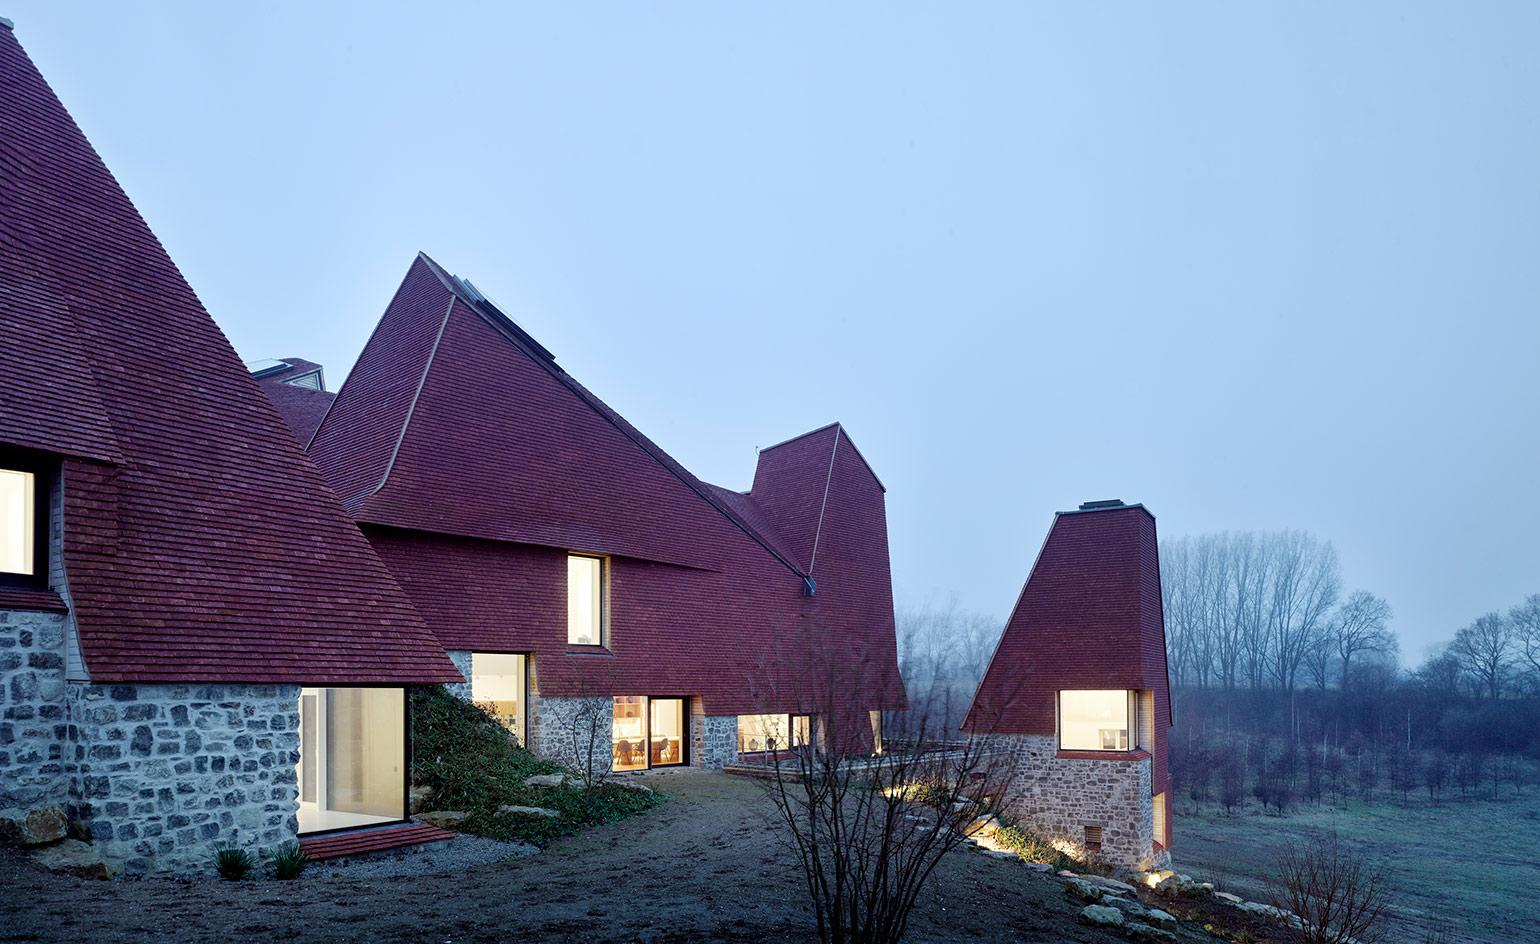 A new take on the English country house is awarded the RIBA House of the Year